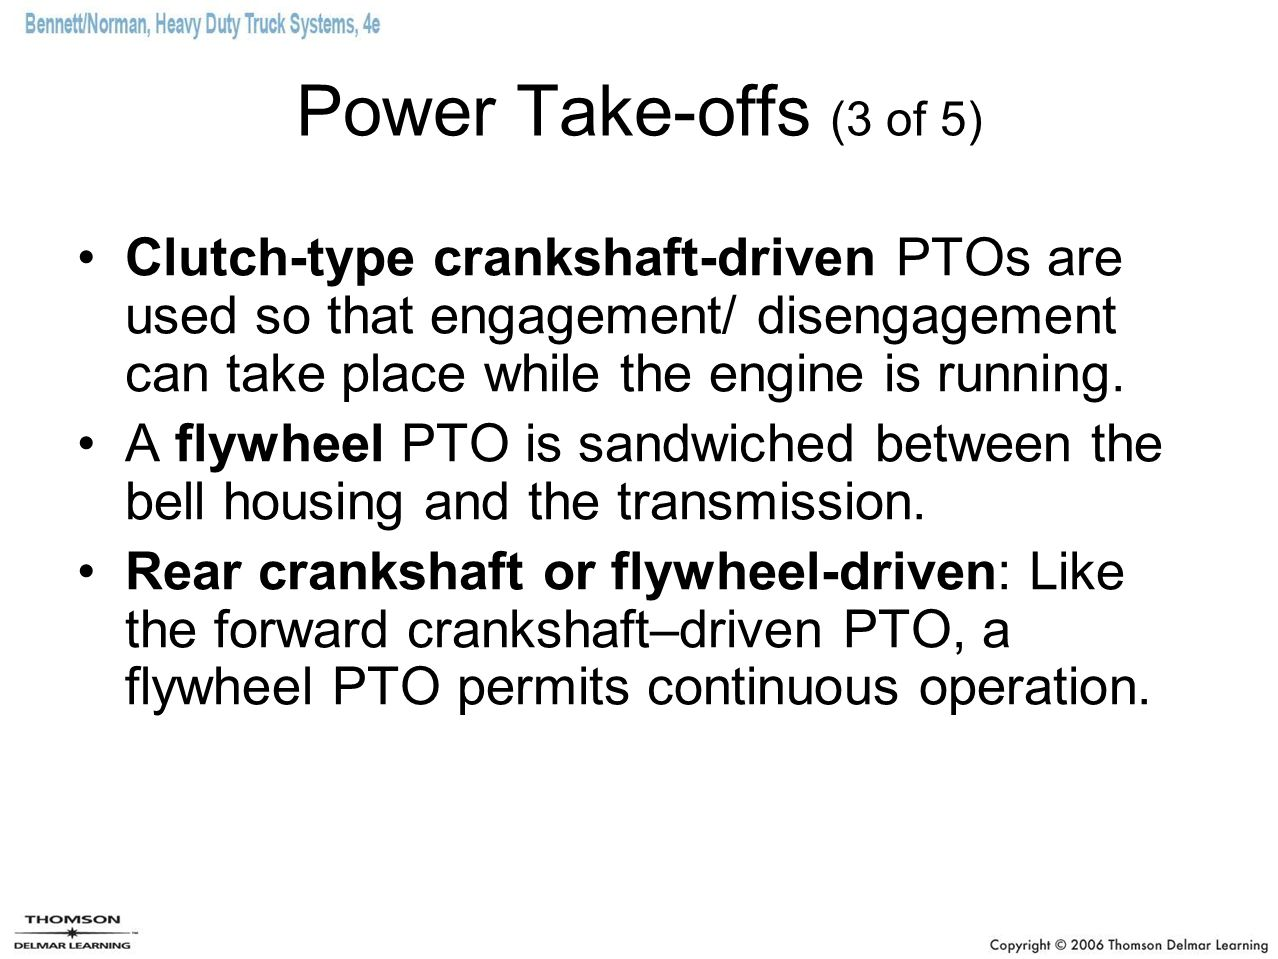 Power Take-offs (3 of 5) Clutch-type crankshaft-driven PTOs are used so that engagement/ disengagement can take place while the engine is running.